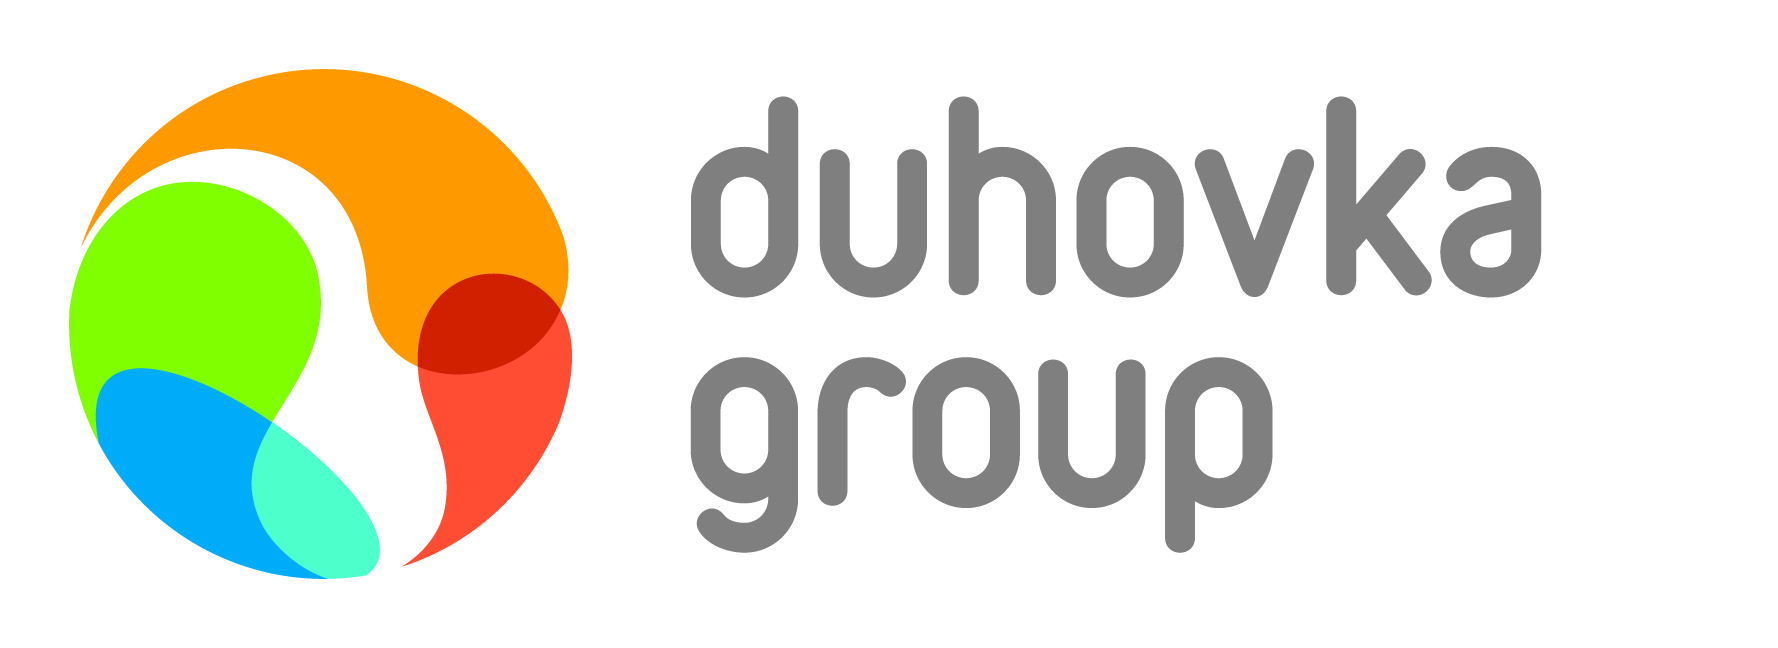 Duhovka Group logo